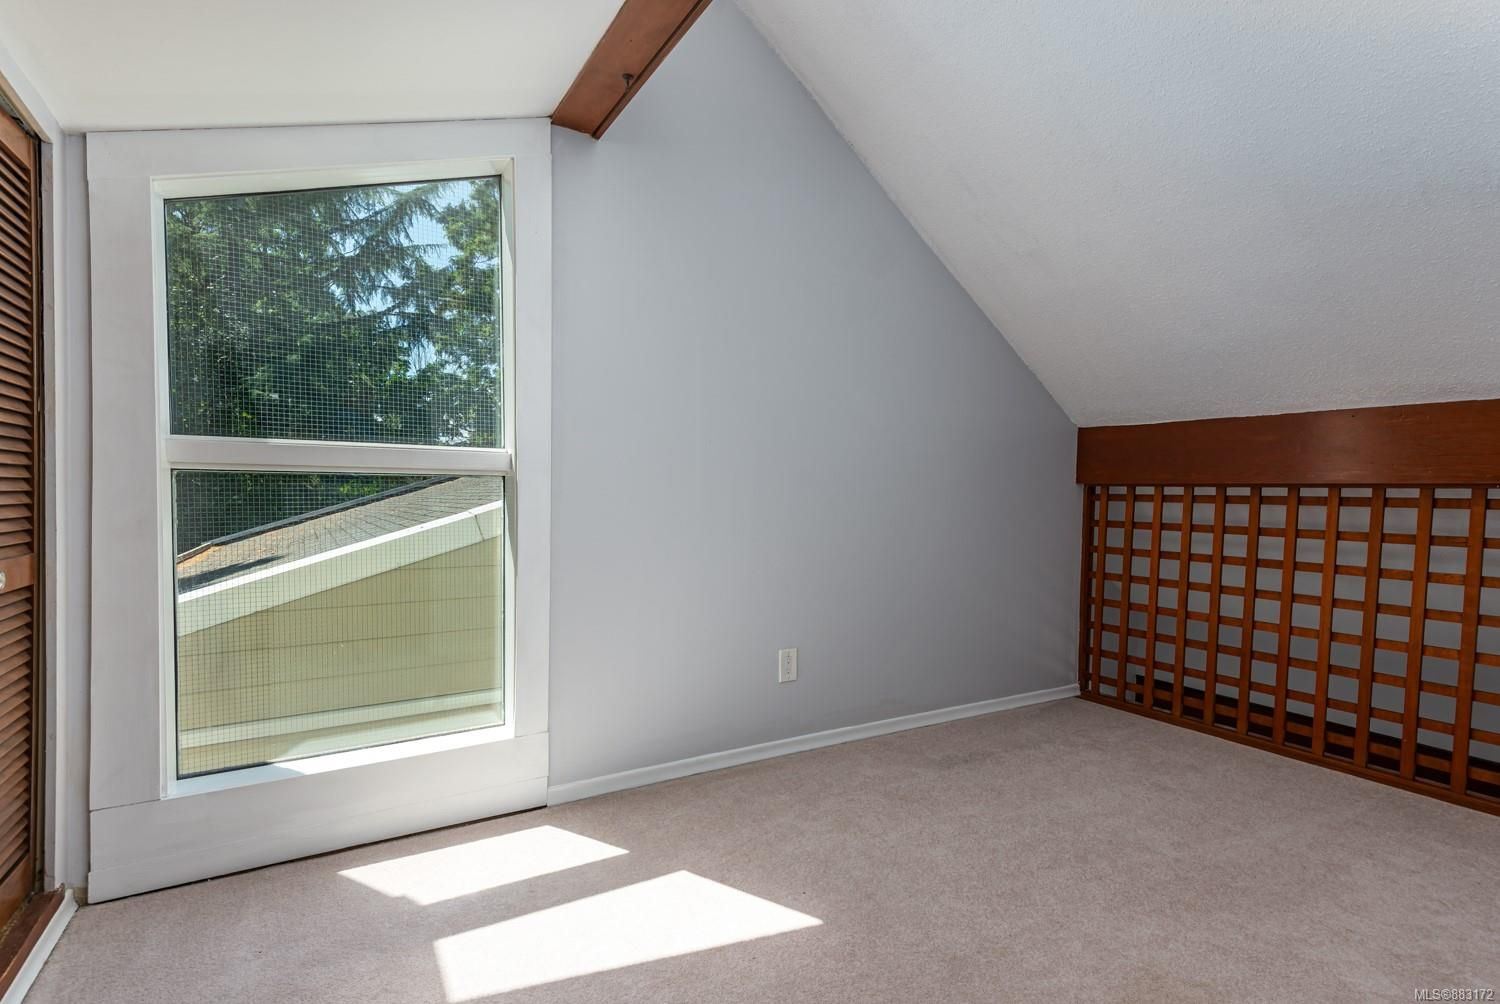 Photo 21: Photos: 303 205 1st St in : CV Courtenay City Row/Townhouse for sale (Comox Valley)  : MLS®# 883172